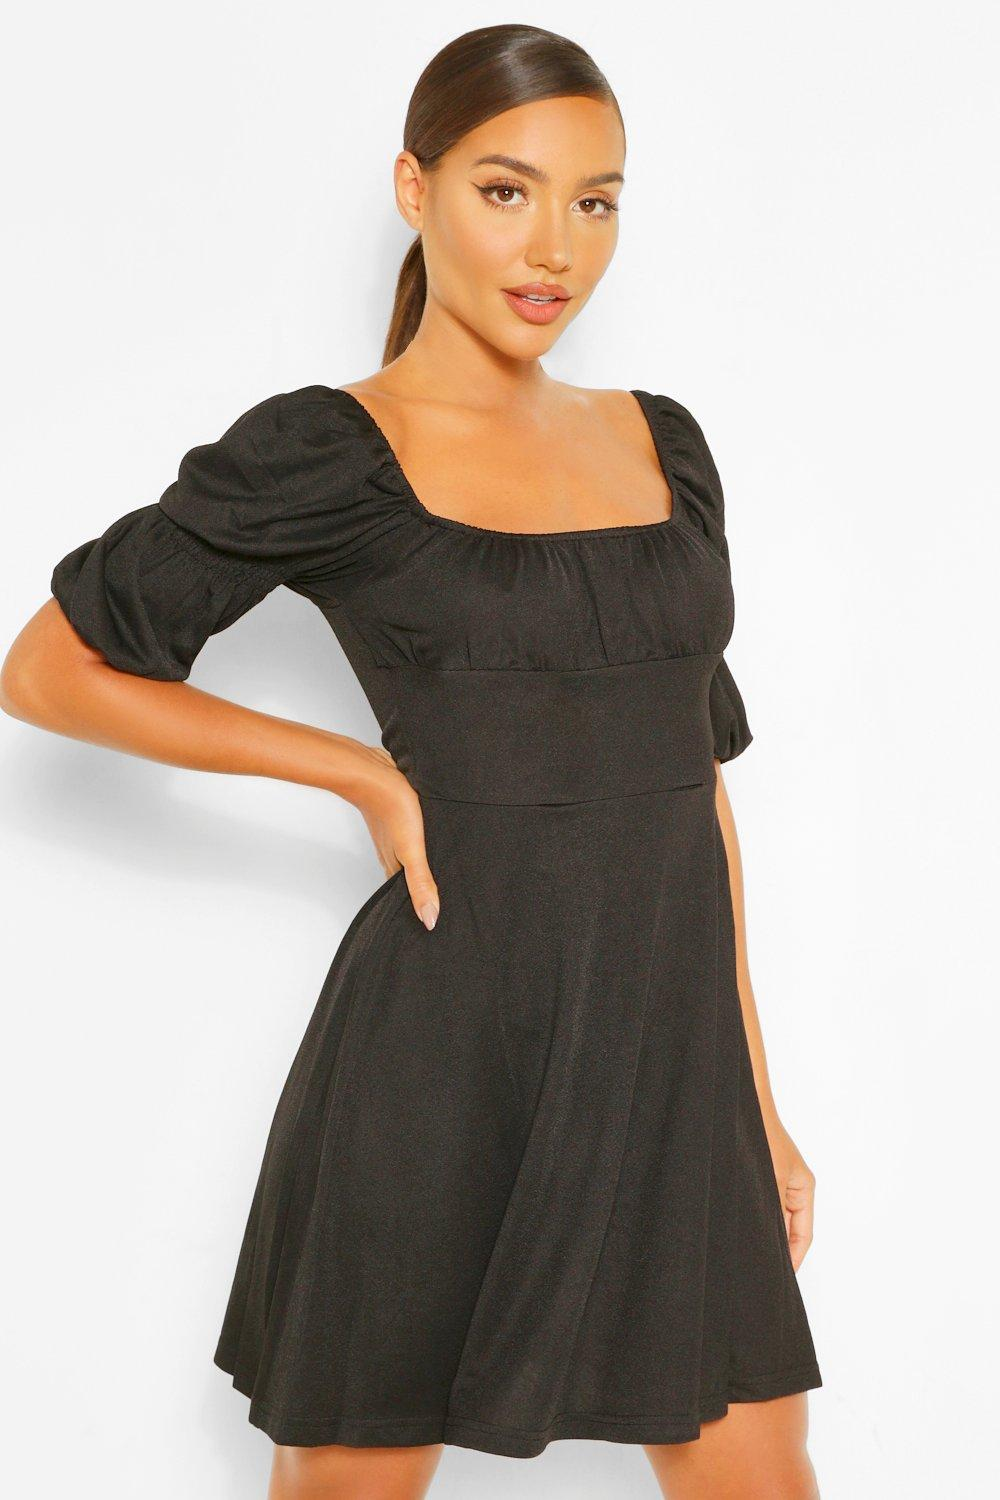 boohoo Womens Puff Sleeve Rouched Bust Skater Dress - Black - 10, Black